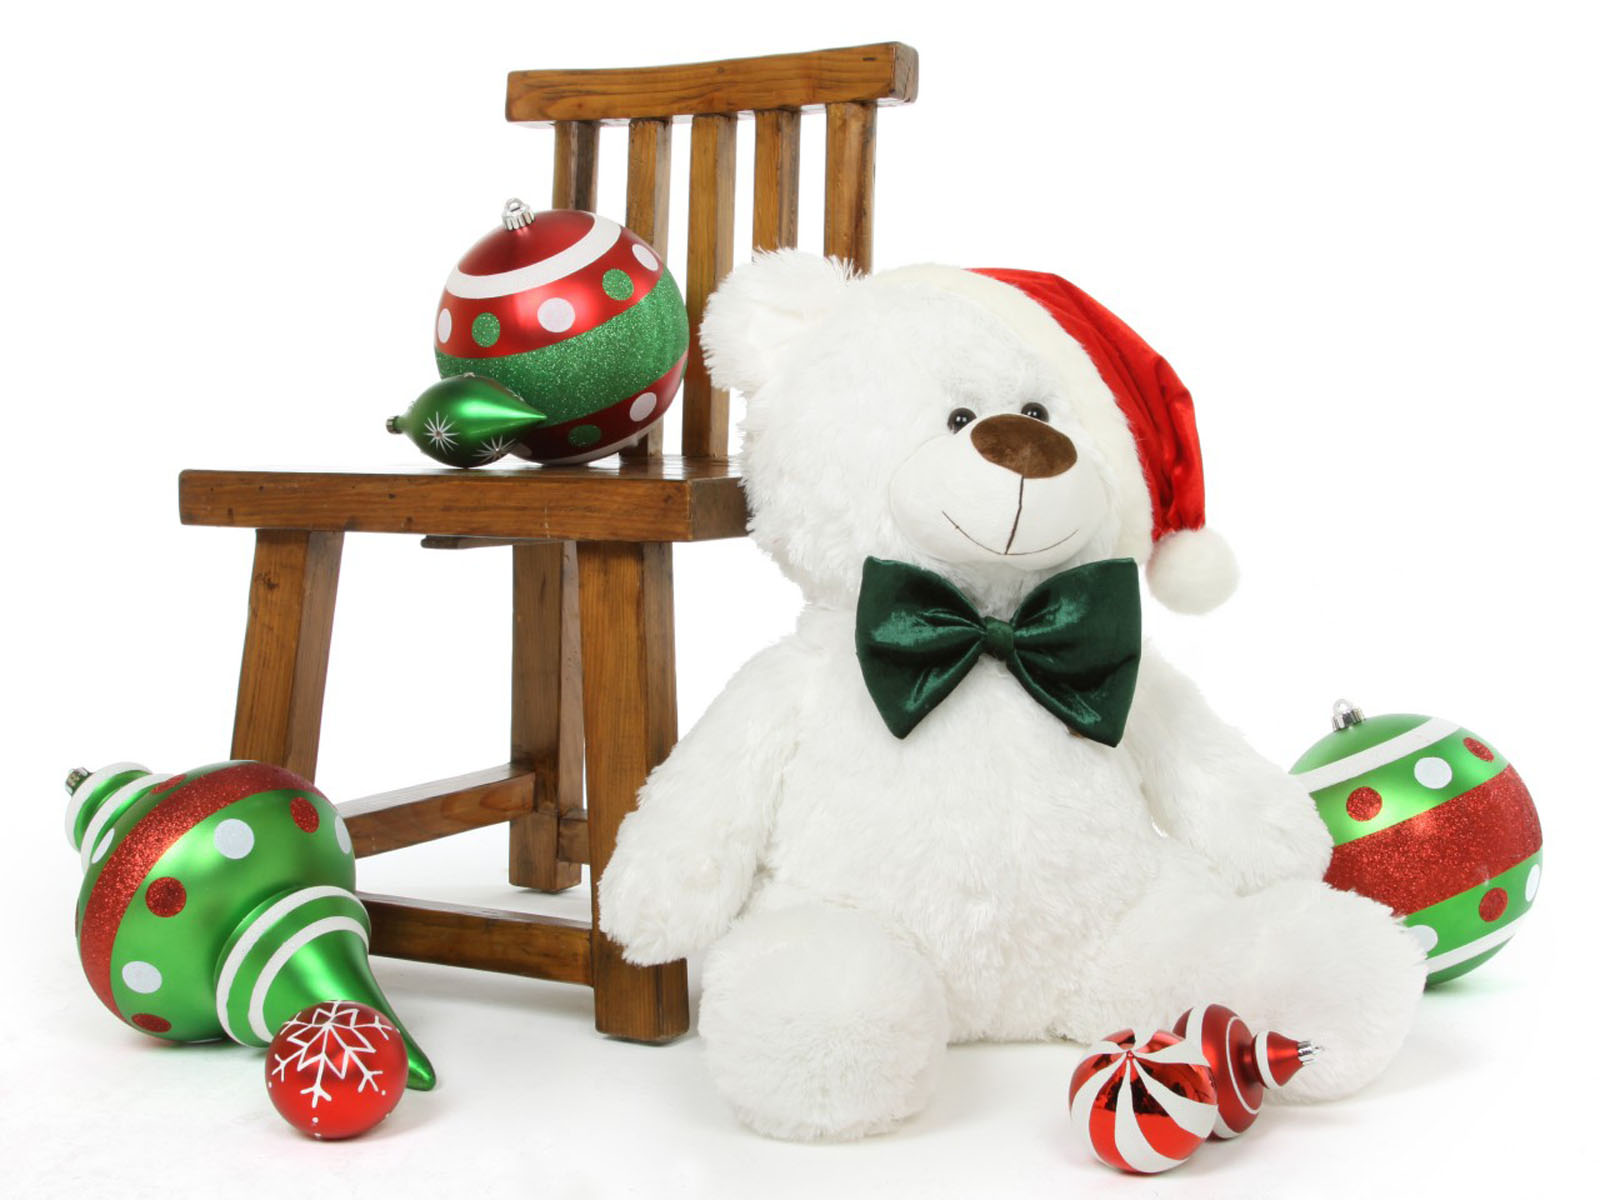 Christmas Teddy Bear Wallpaper: Wallpapers: Christmas Teddy Bear Wallpapers